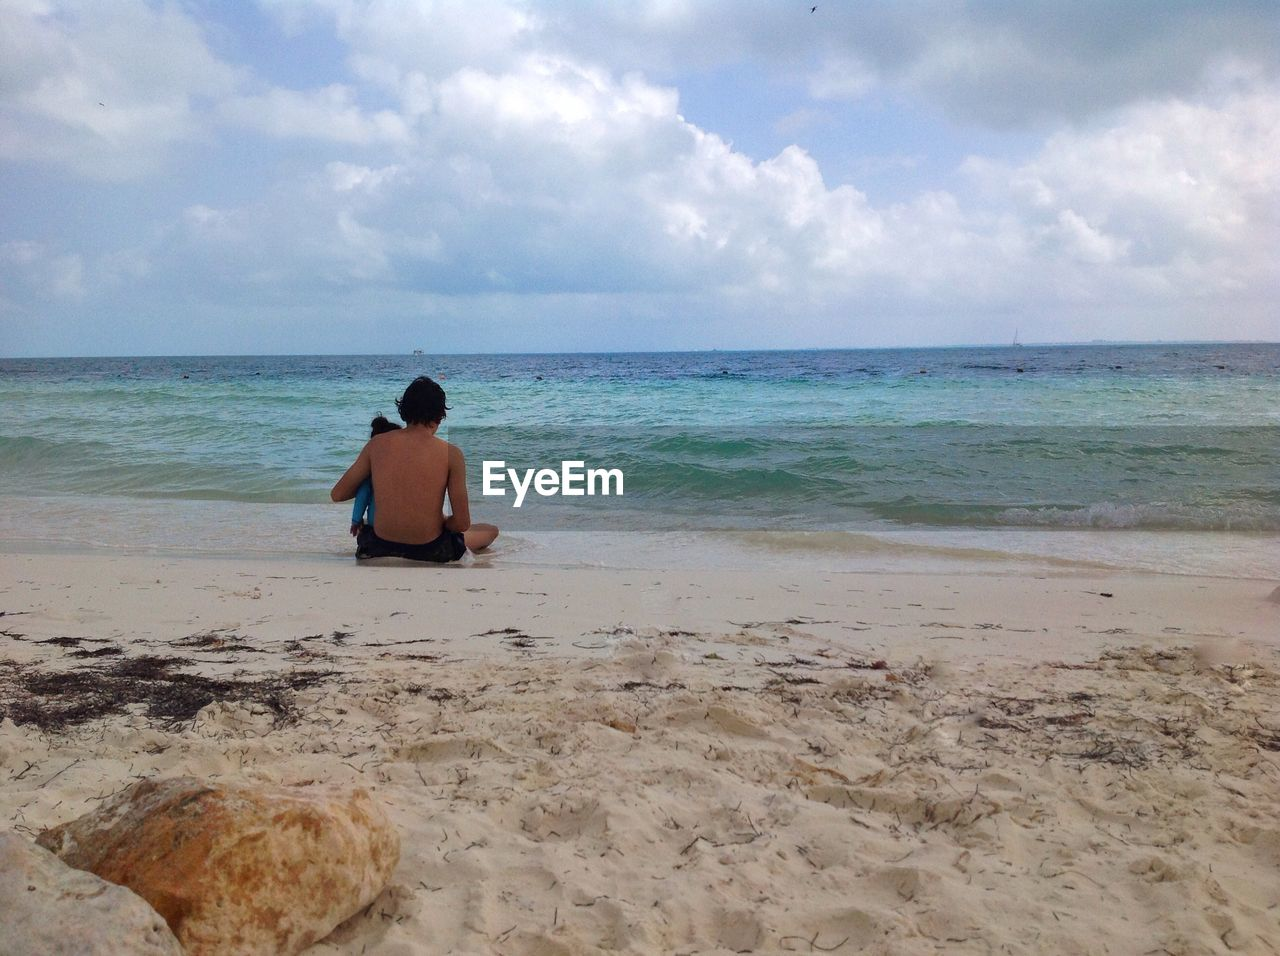 sea, horizon over water, sky, one person, nature, beauty in nature, scenics, beach, water, cloud - sky, rear view, real people, sitting, tranquil scene, tranquility, sand, day, leisure activity, outdoors, lifestyles, vacations, full length, young adult, people